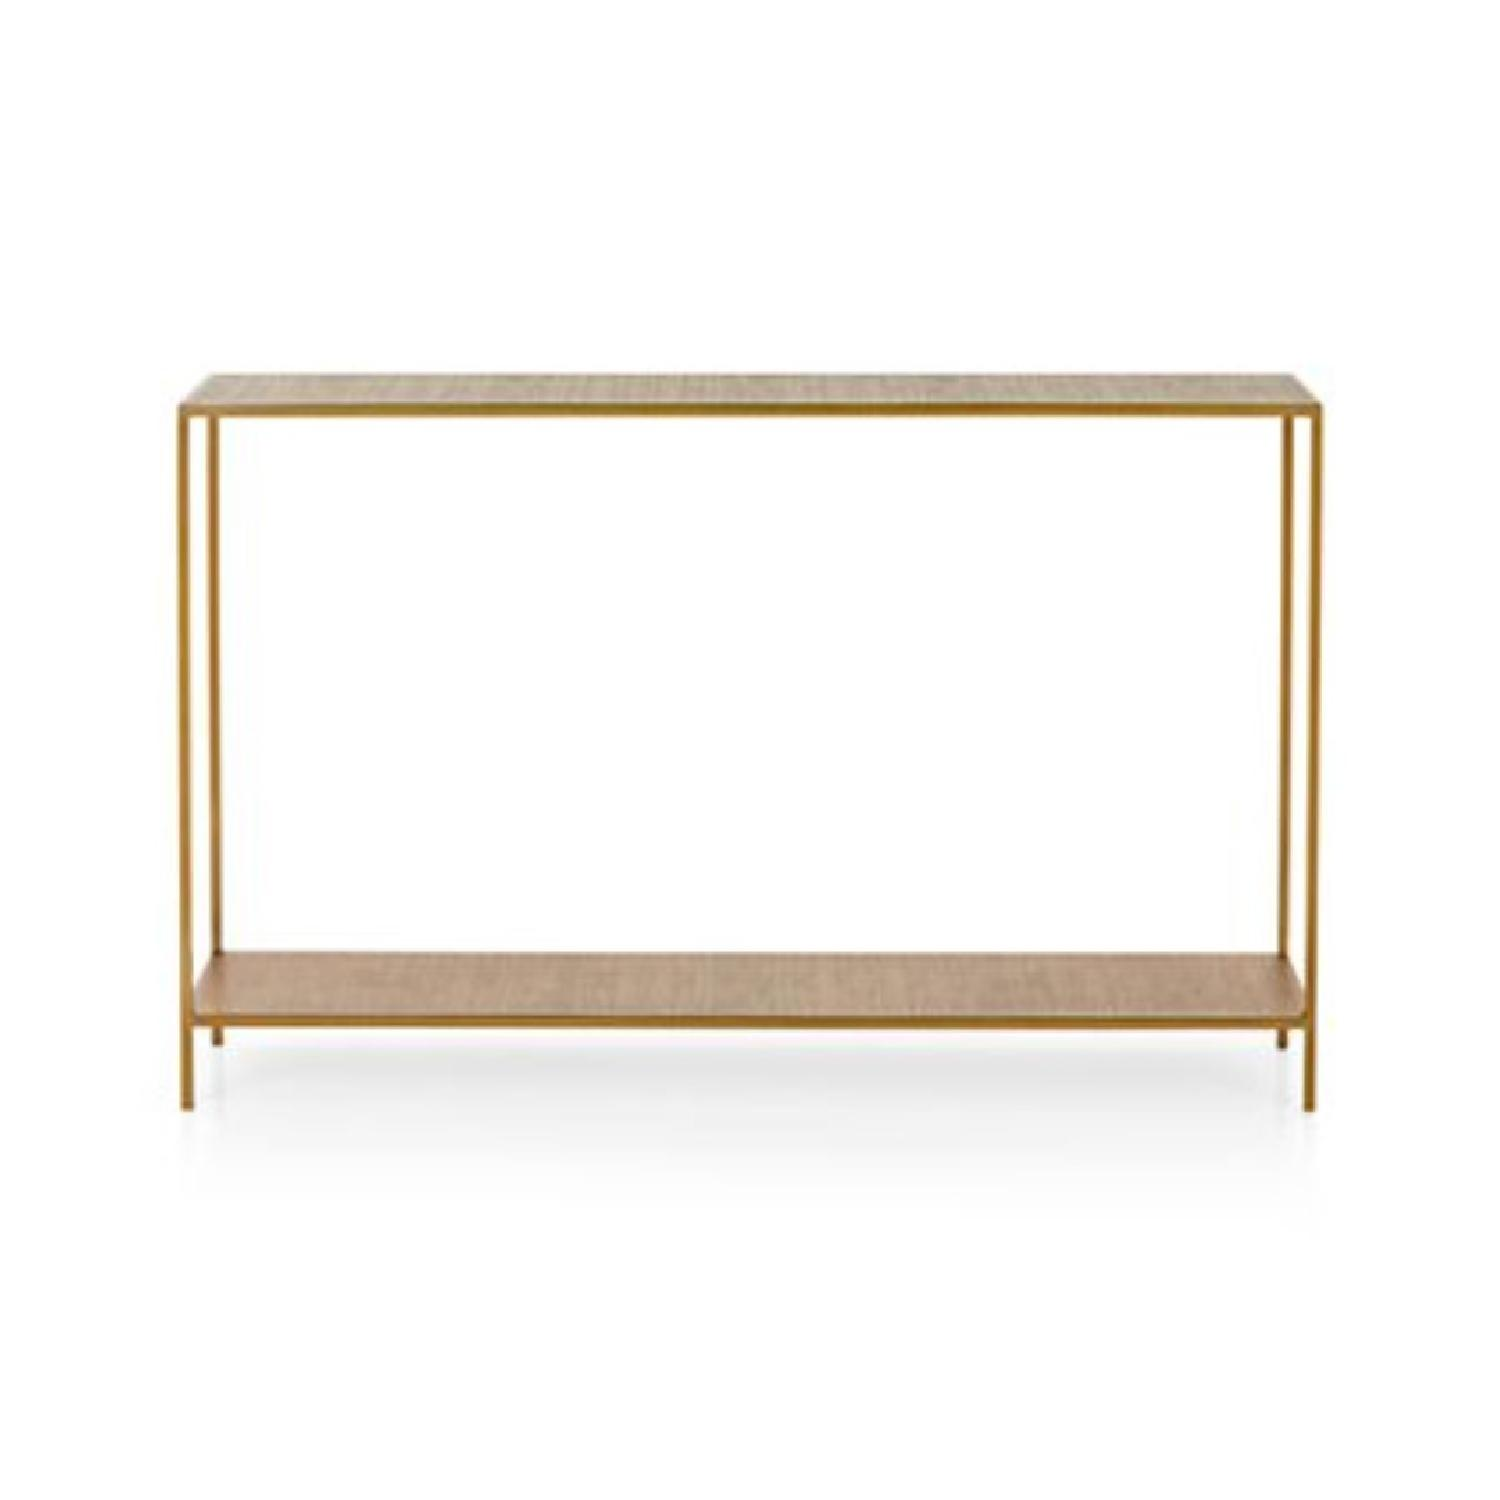 Crate & Barrel Jacque Console Table